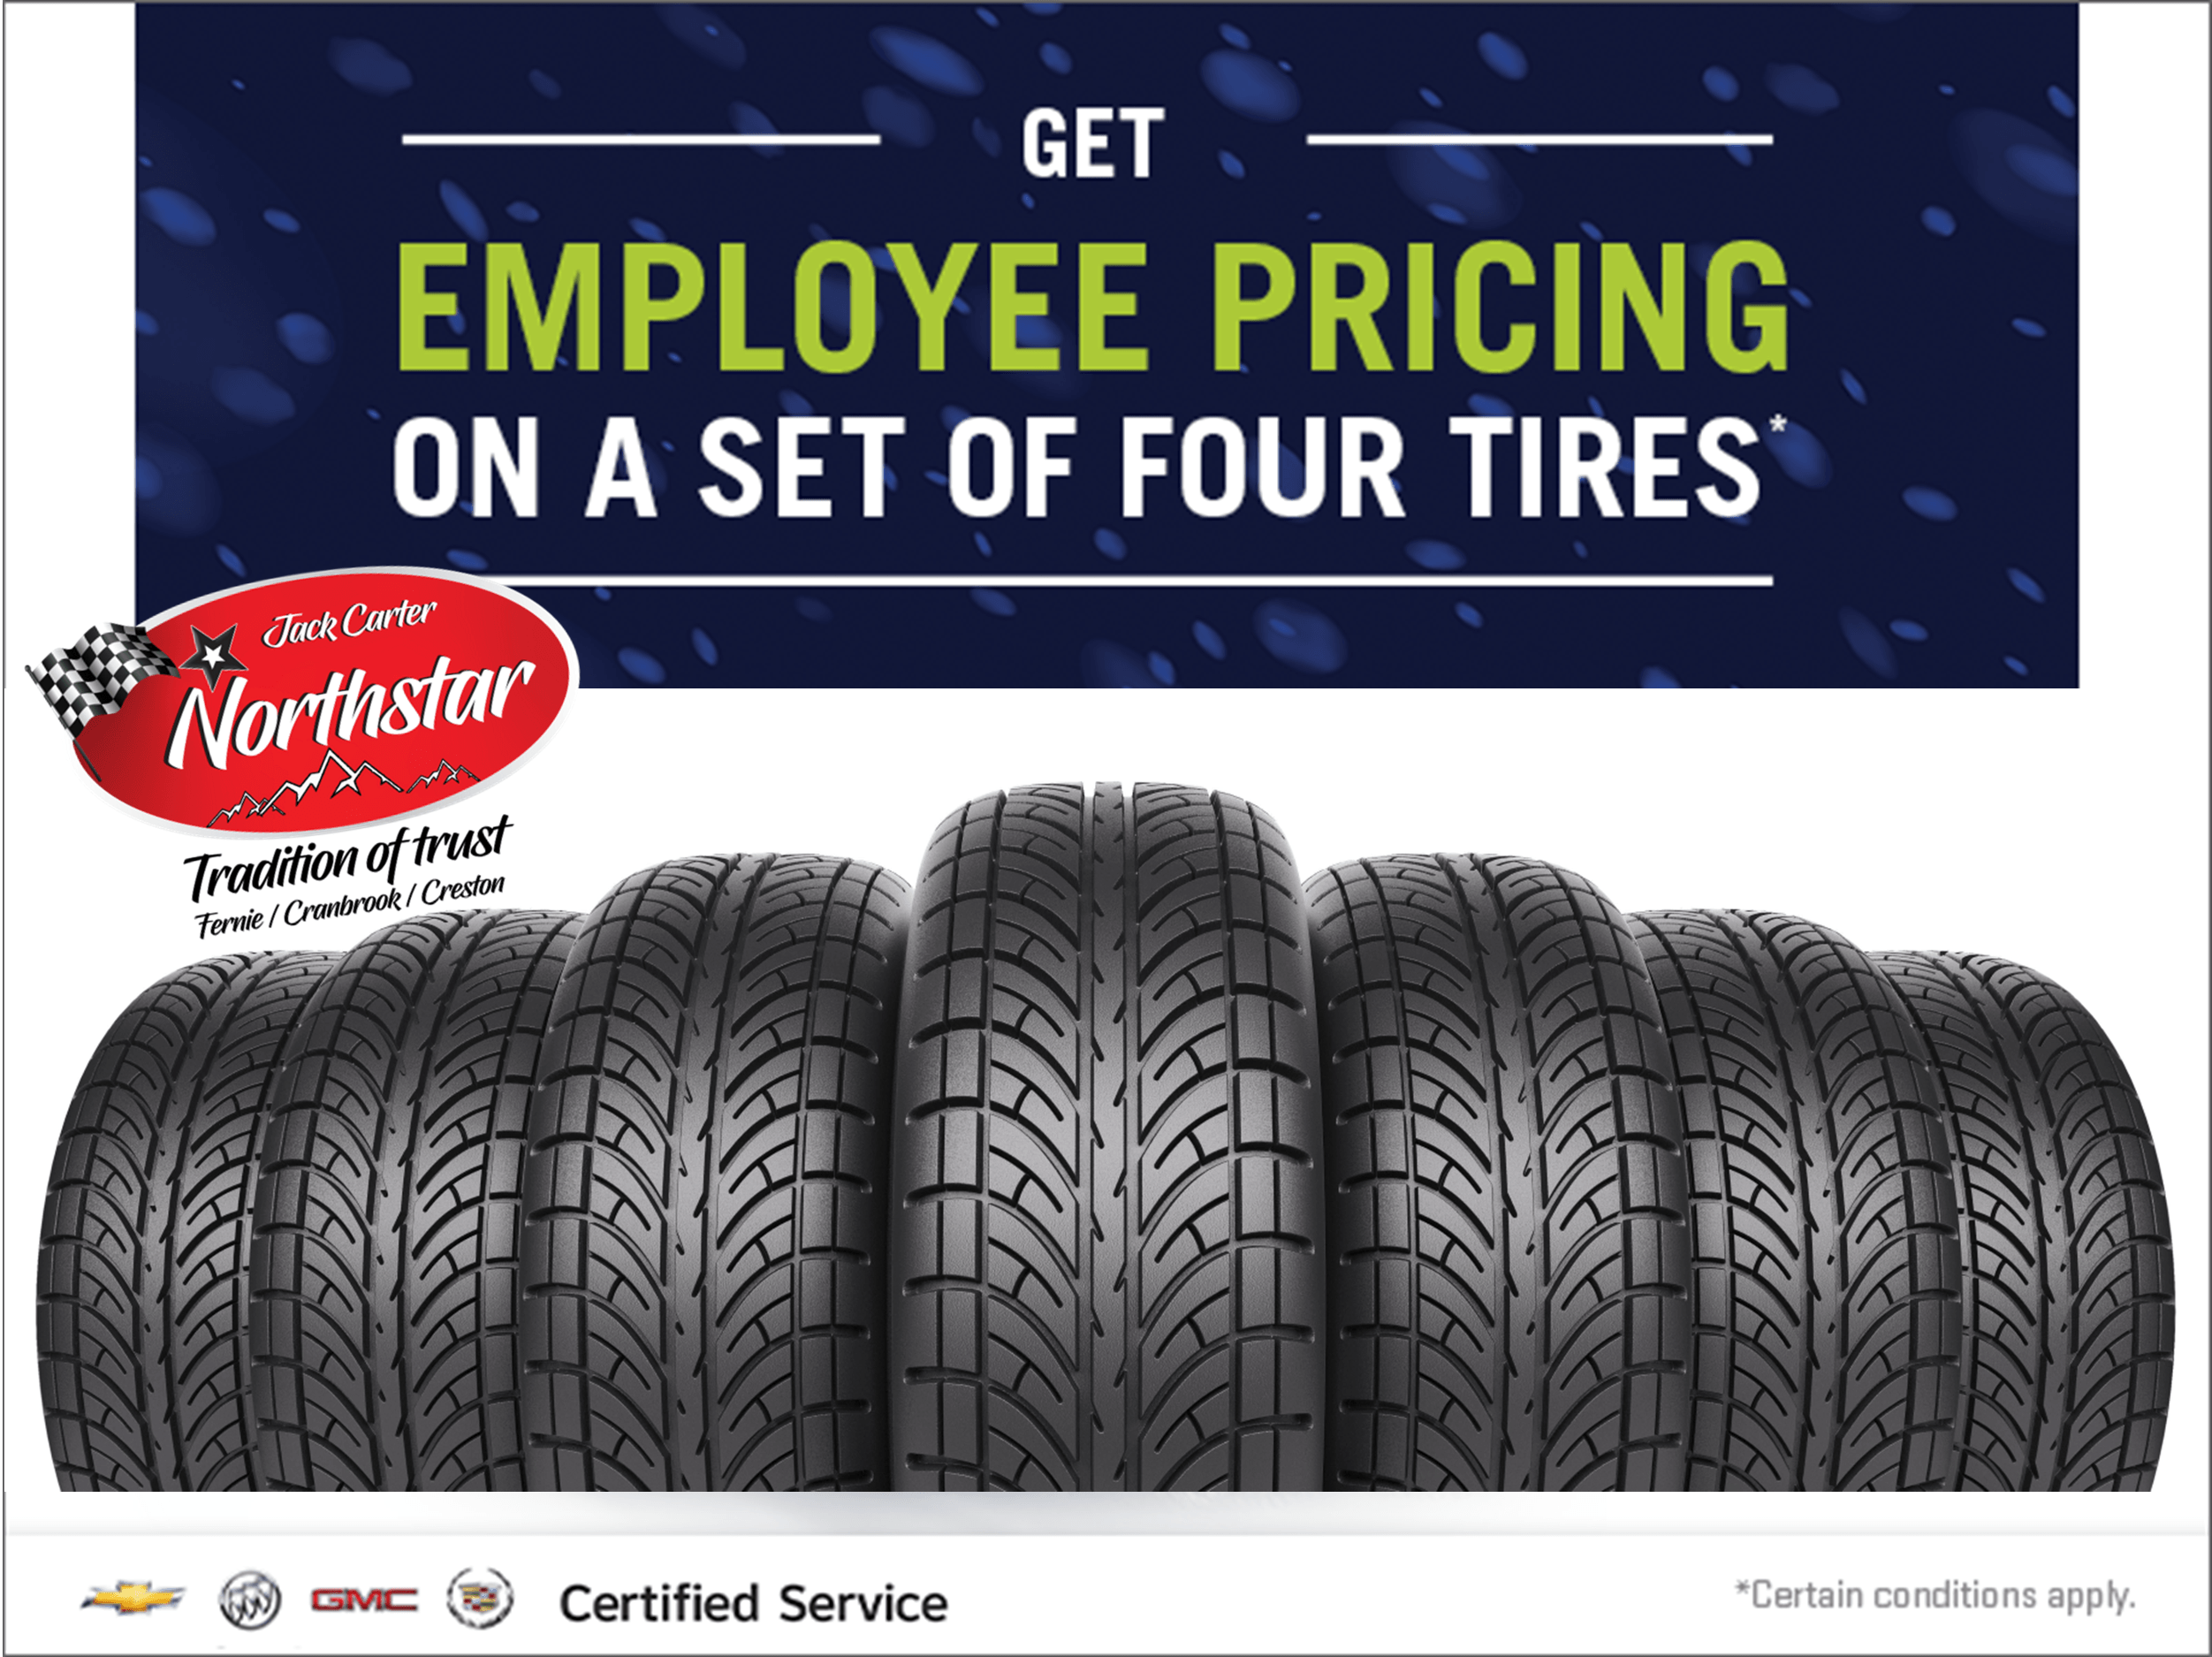 Employee Pricing on a set of 4 tires